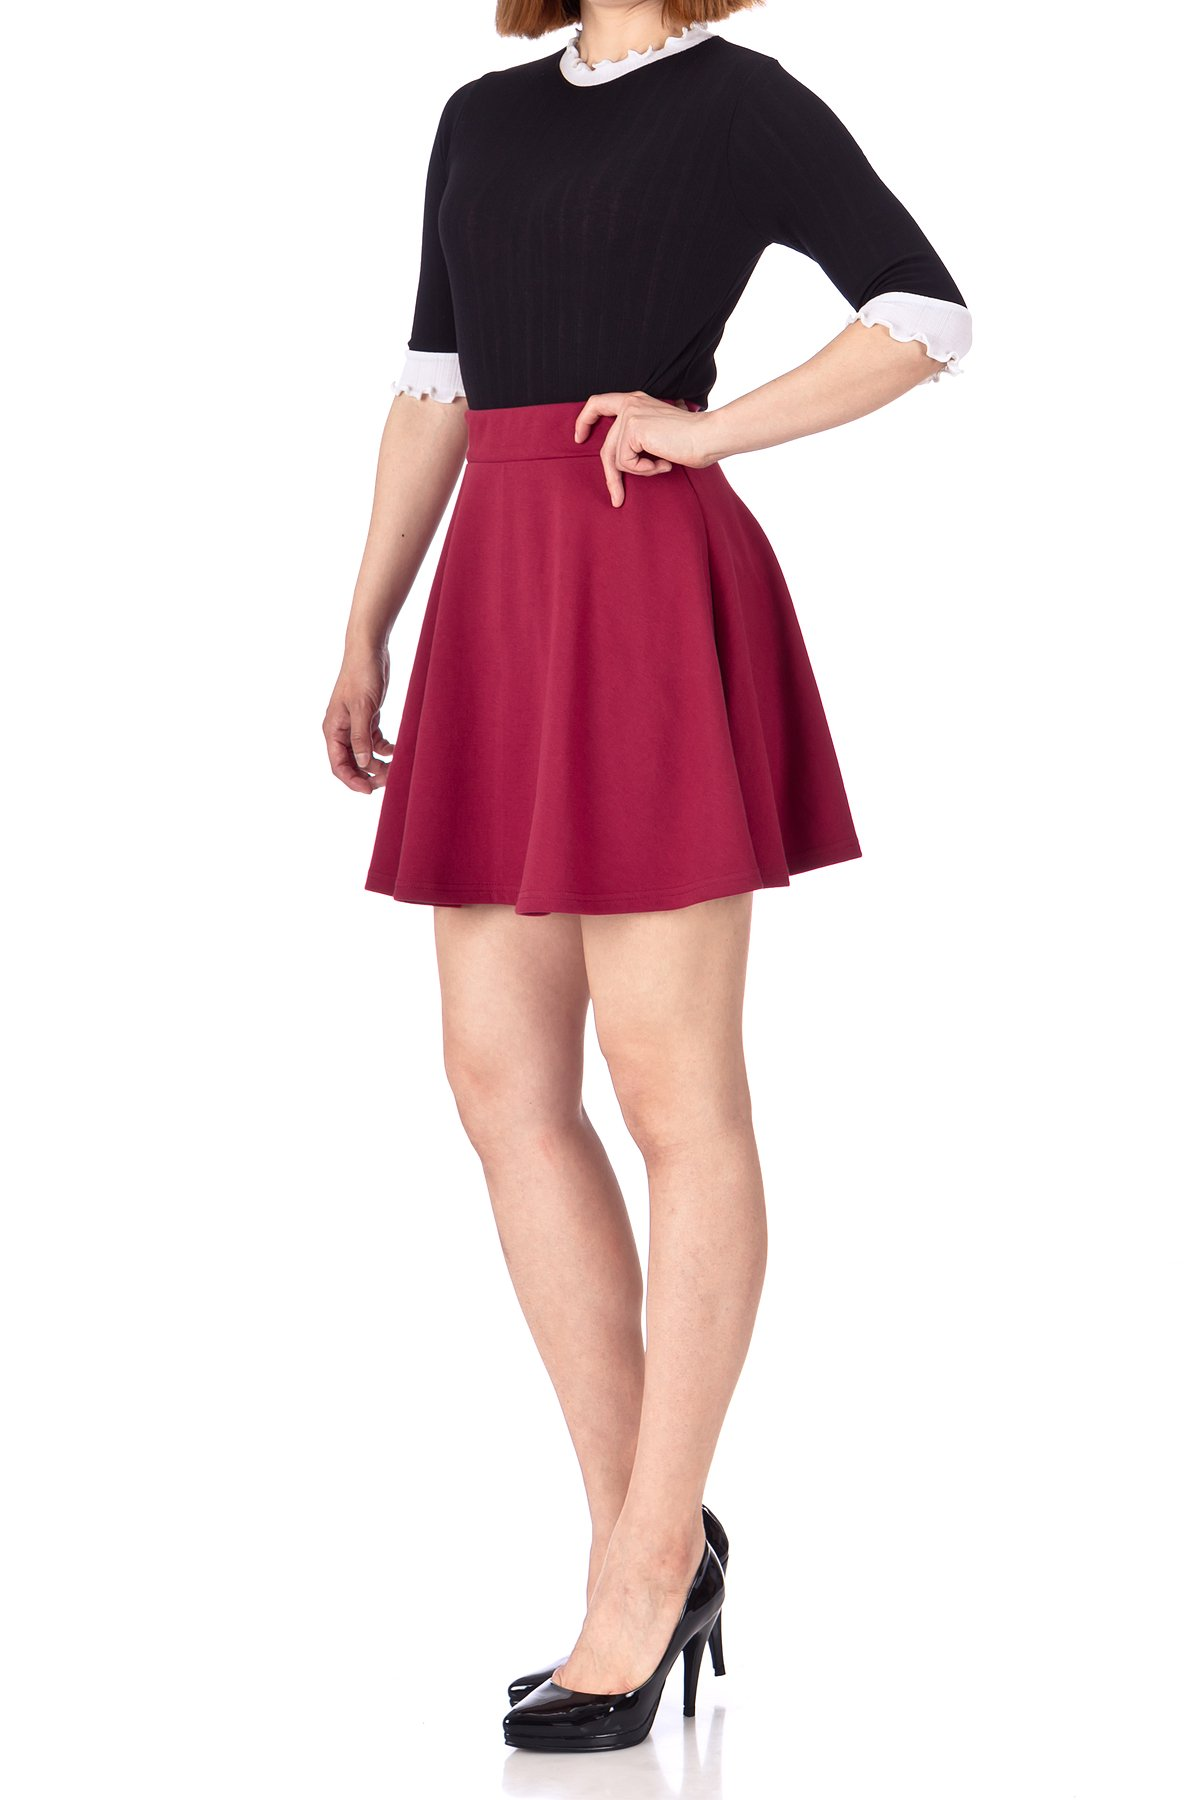 Basic Solid Stretchy Cotton High Waist line Flared Skater Mini Skirt Burgundy 03